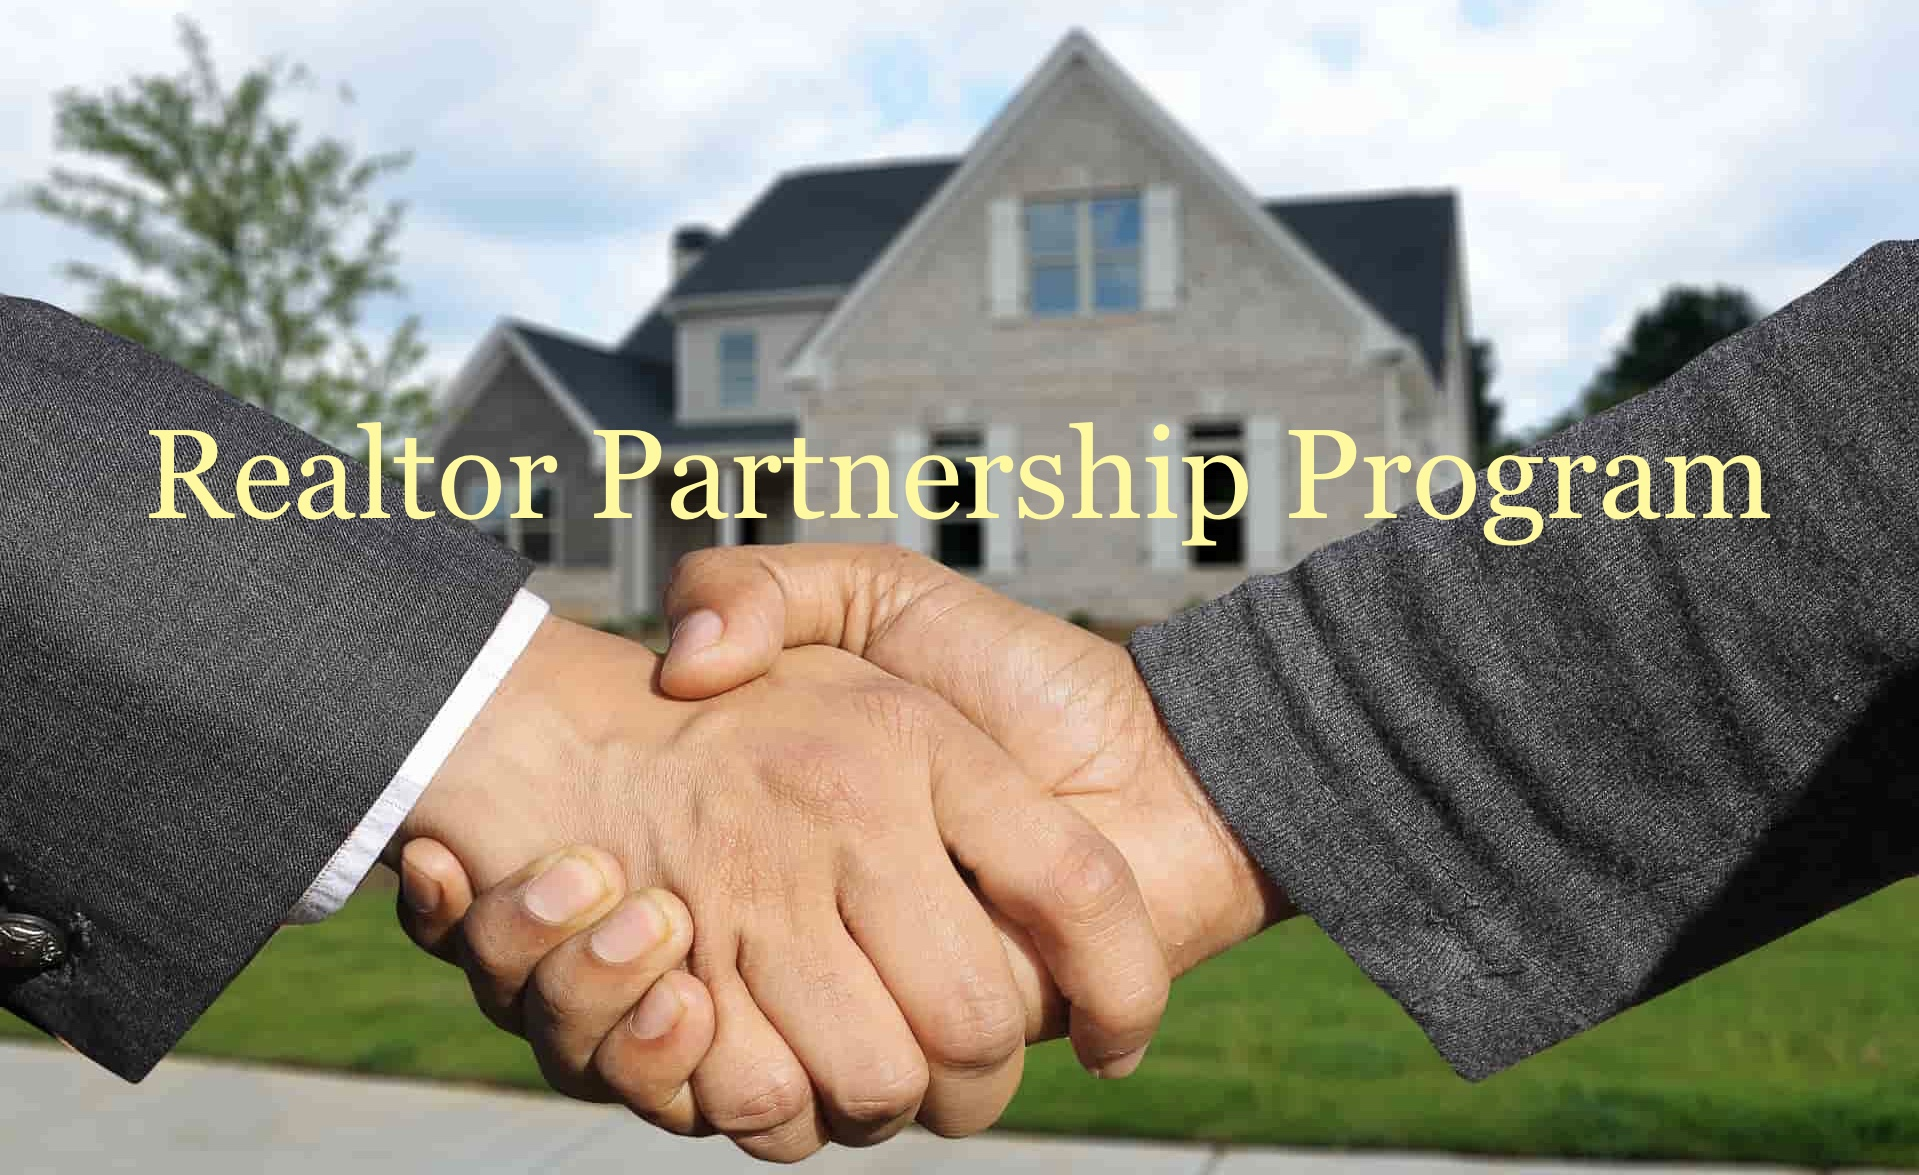 Realtor Partnership Program